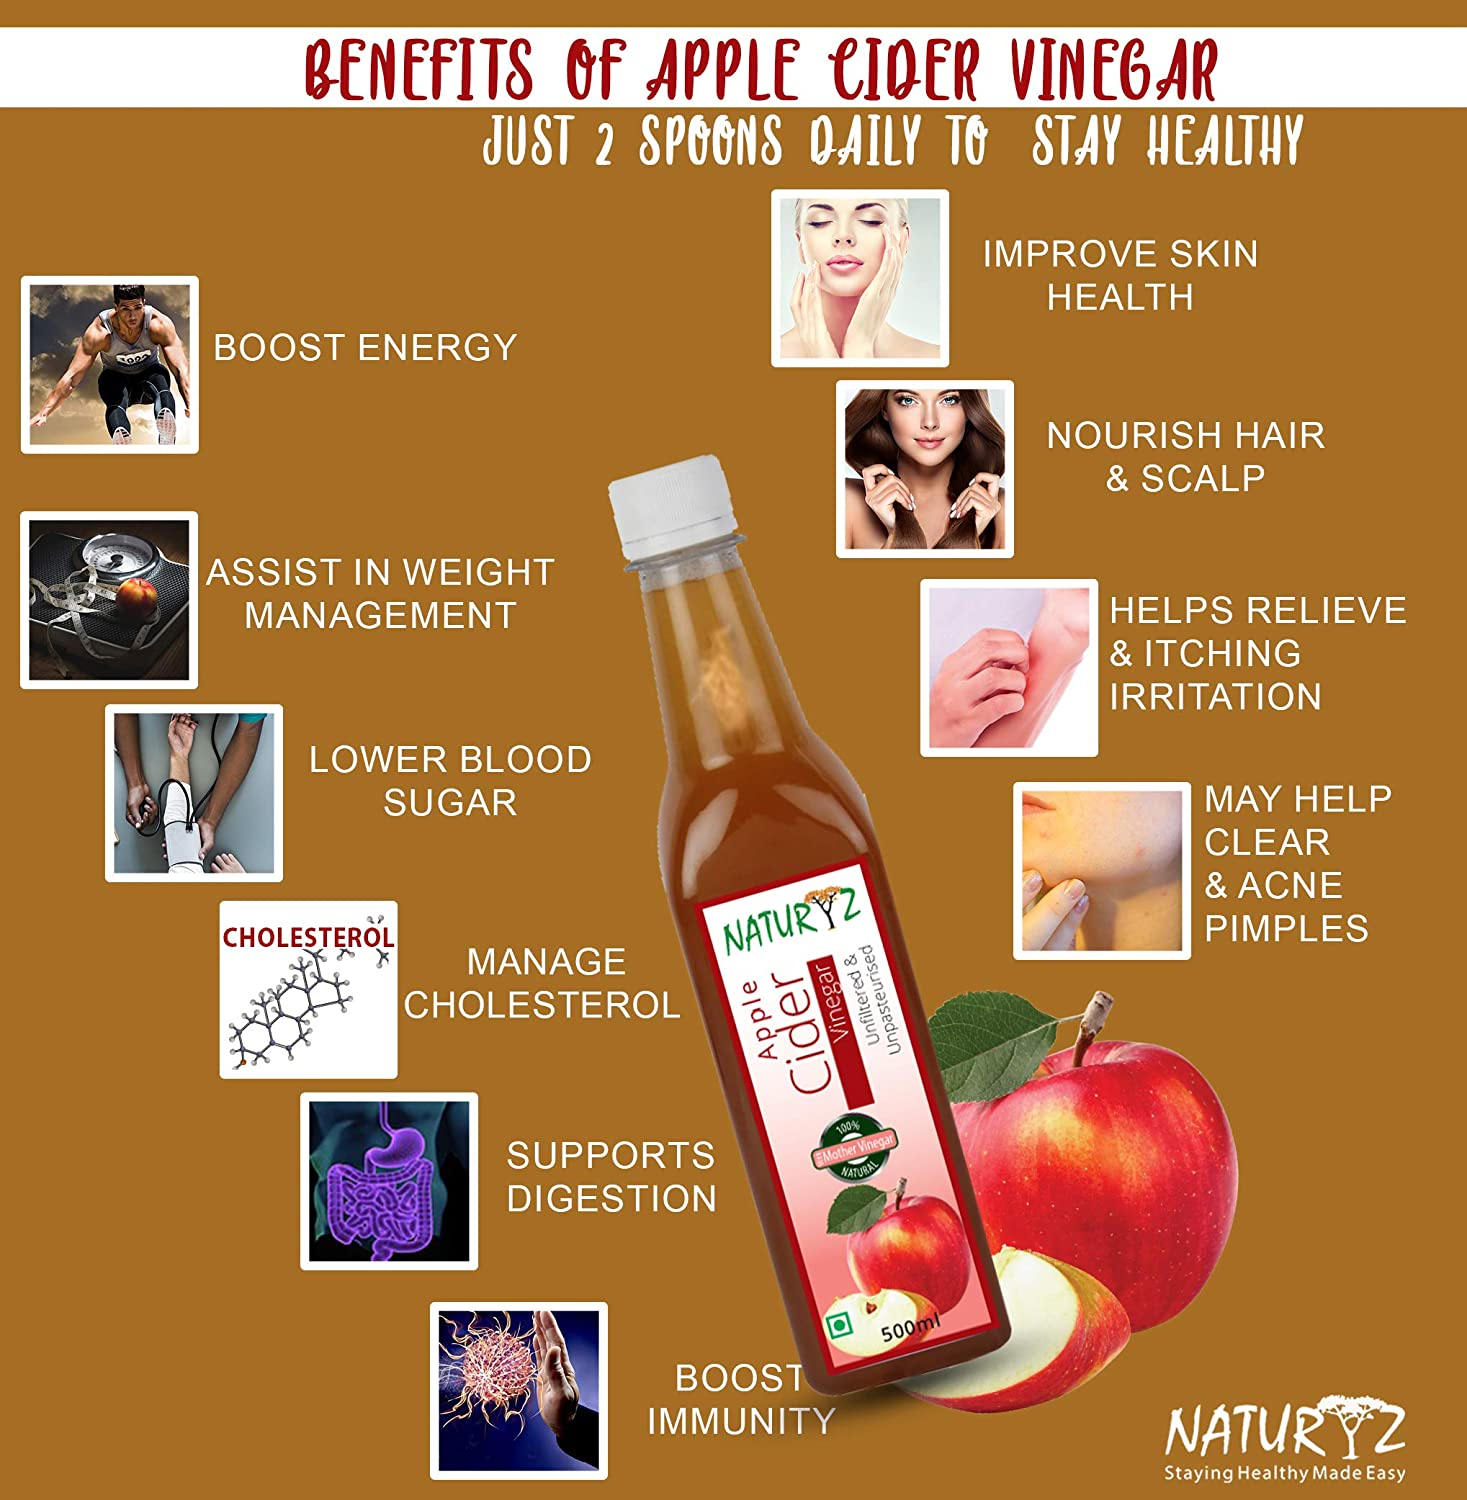 Naturyz Apple Cider Vinegar - 500 ml (Pack of 4) for Weight Loss, Skin  Treatment, Hair Growth (Natural, Raw, Unpasteurized, Undiluted)